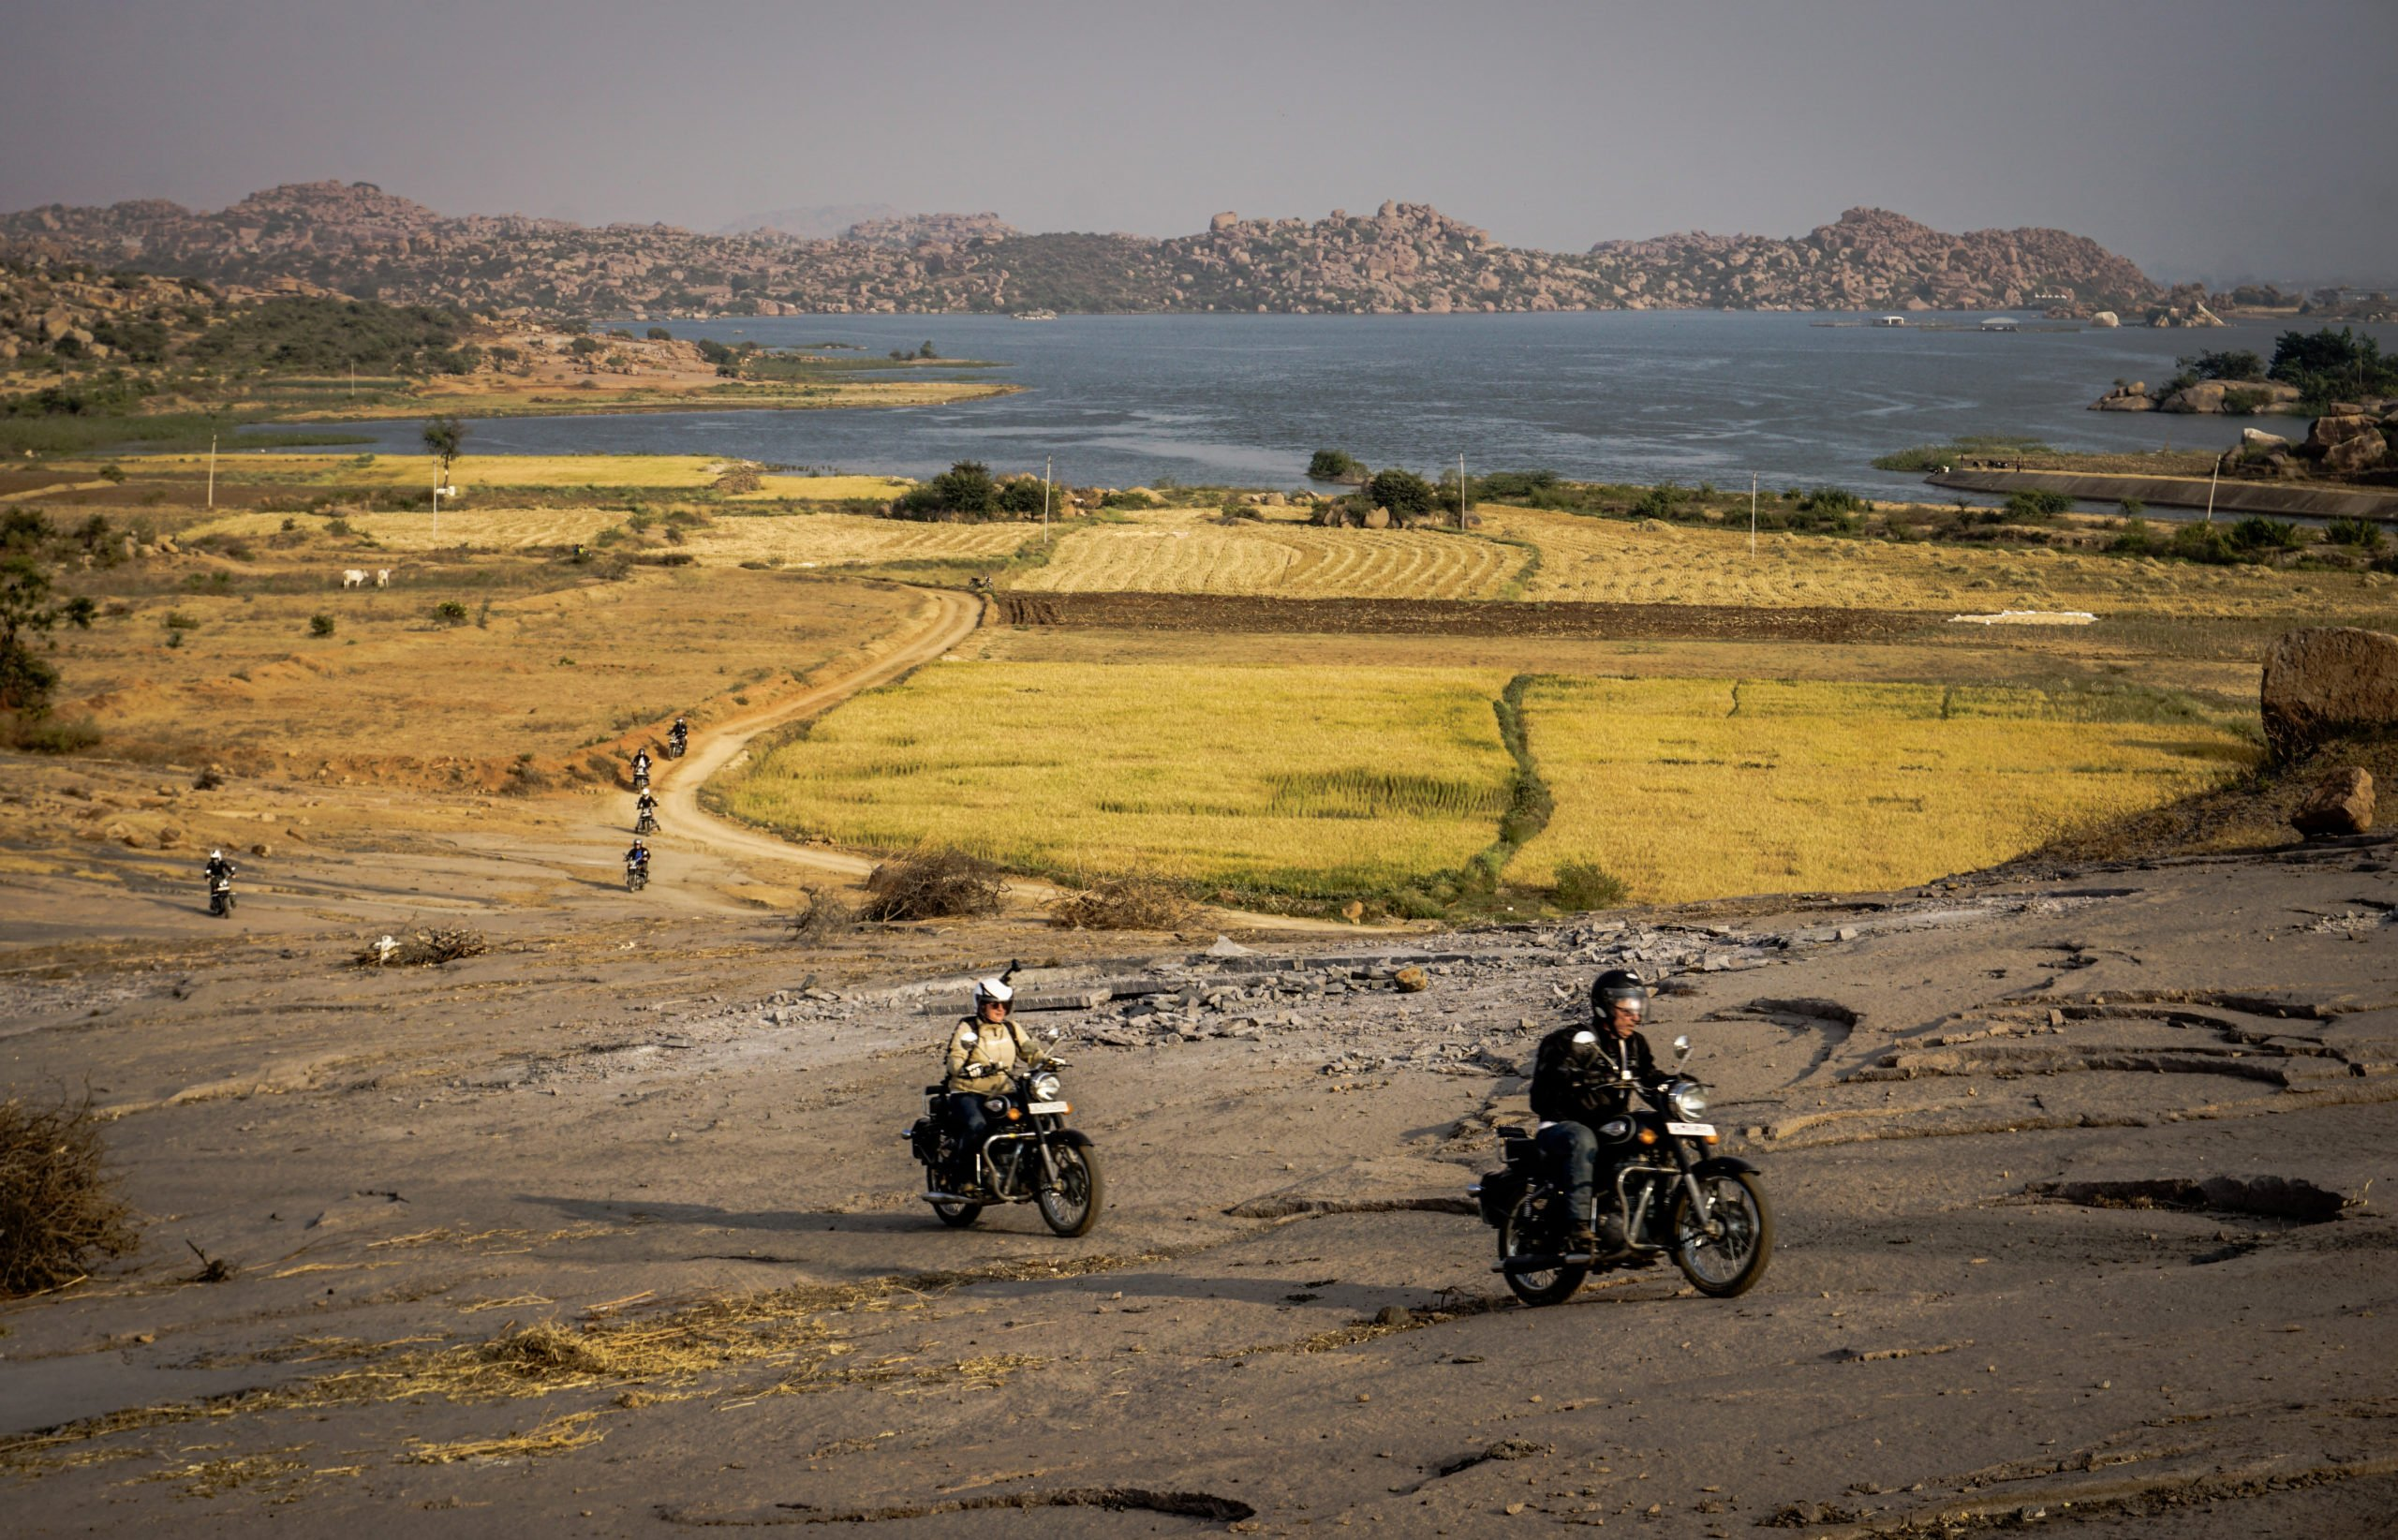 Motorcycle road trip India / Southern India - Goa, Jungle & Antique Wonders